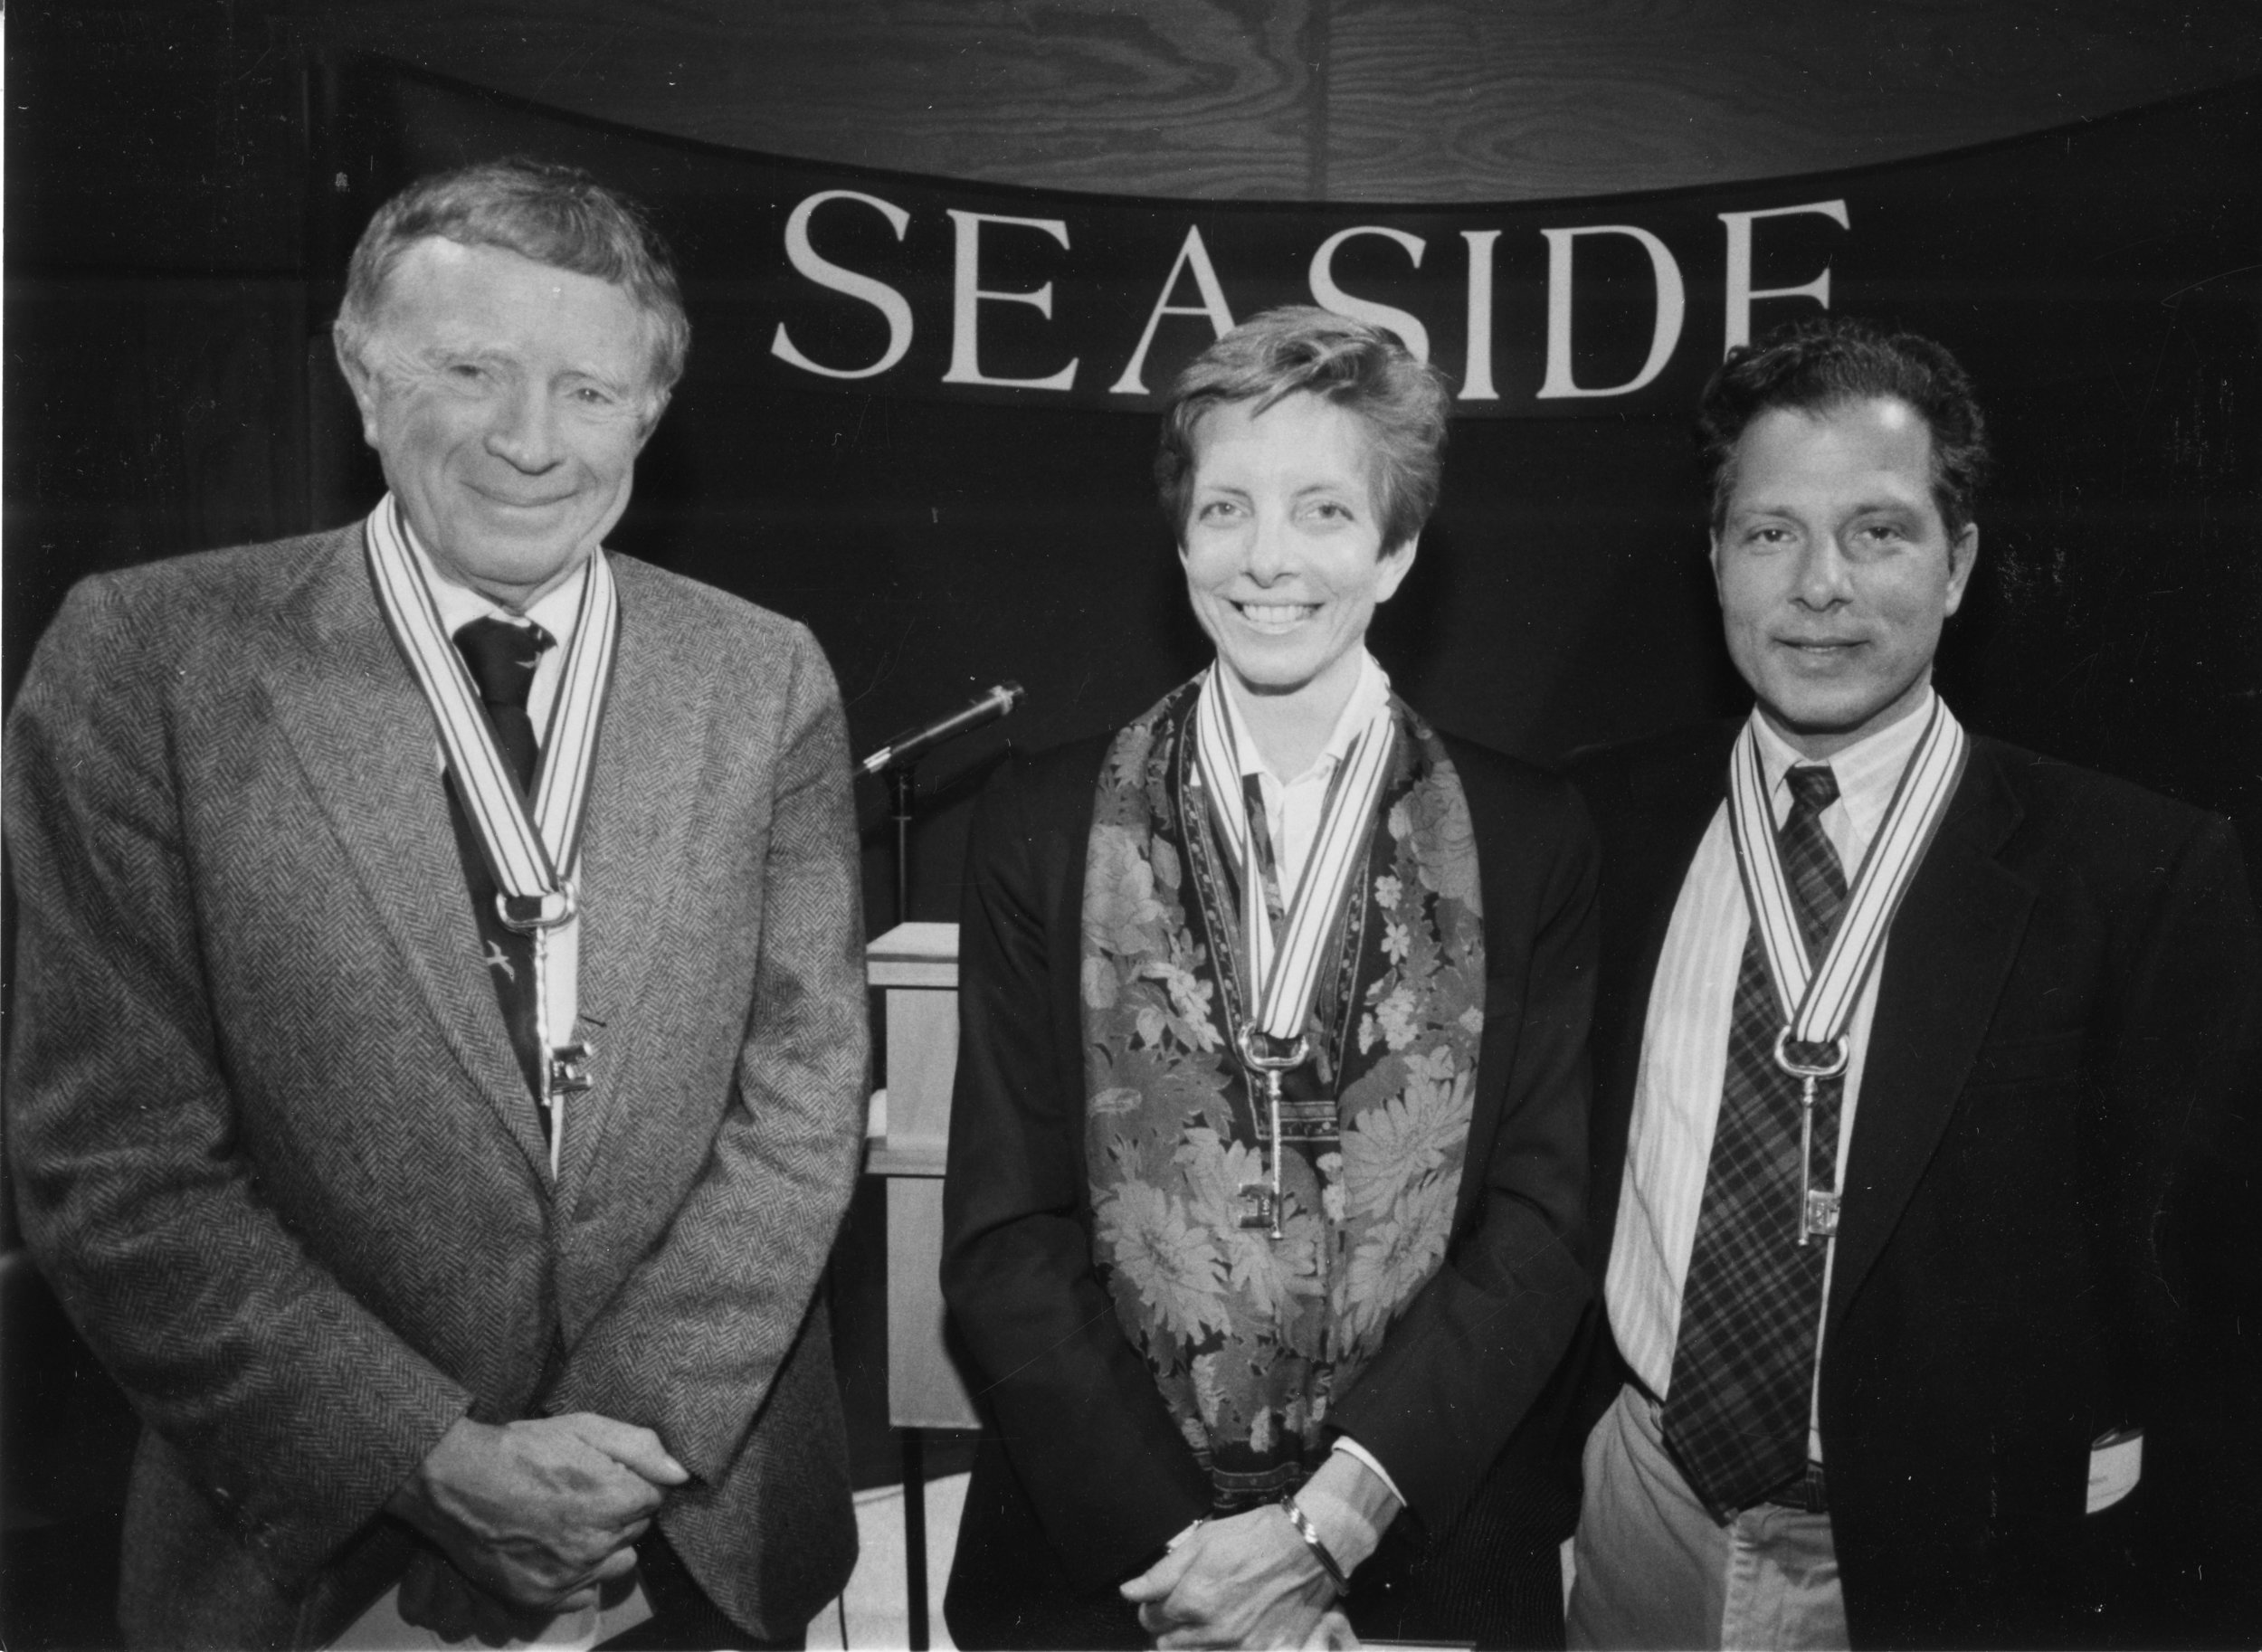 Vincent Scully, Elizabeth Plater-Zyberk and Andrés Duany,Seaside Fellows.  1993 Seaside Prize Winners